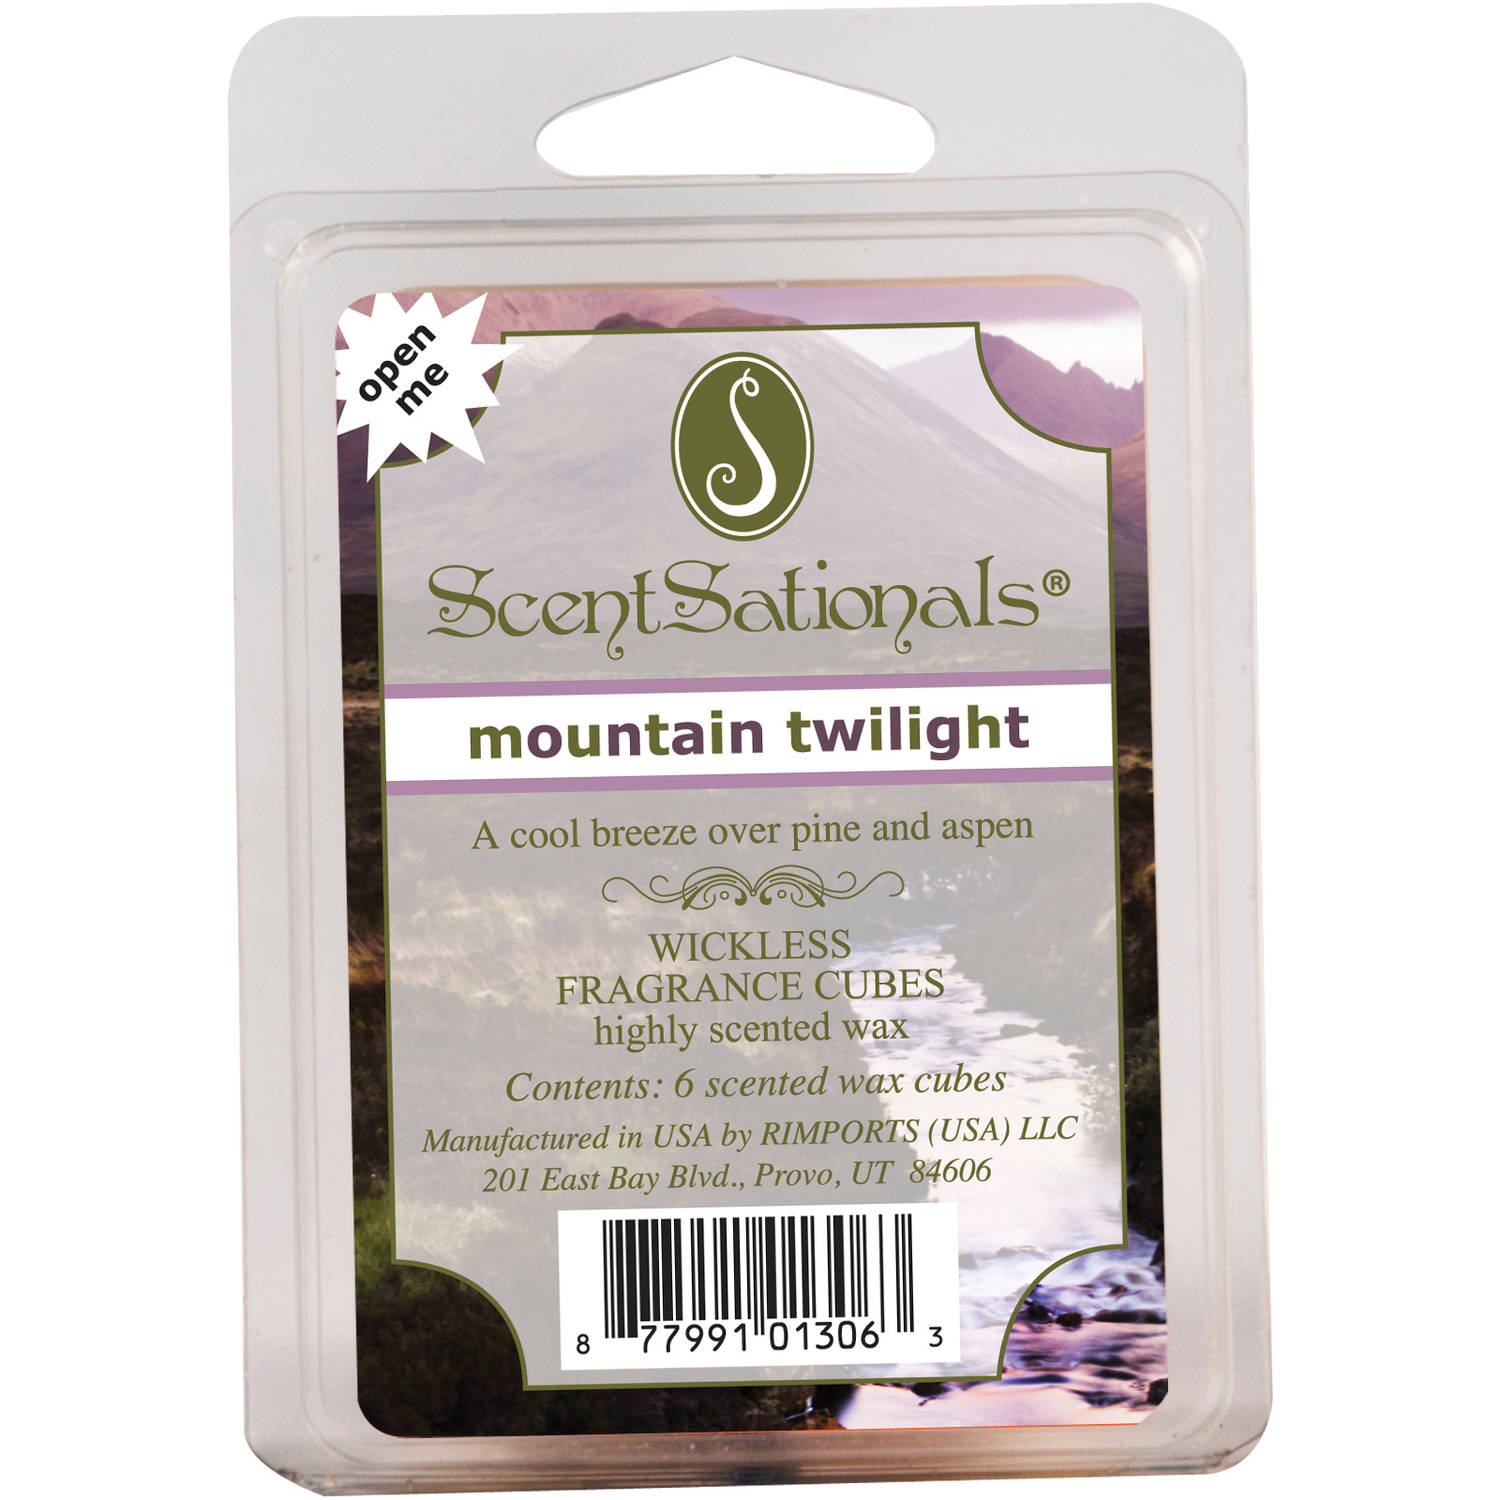 ScentSationals Wickless Fragrance Wax Cubes, Mountain Twilight